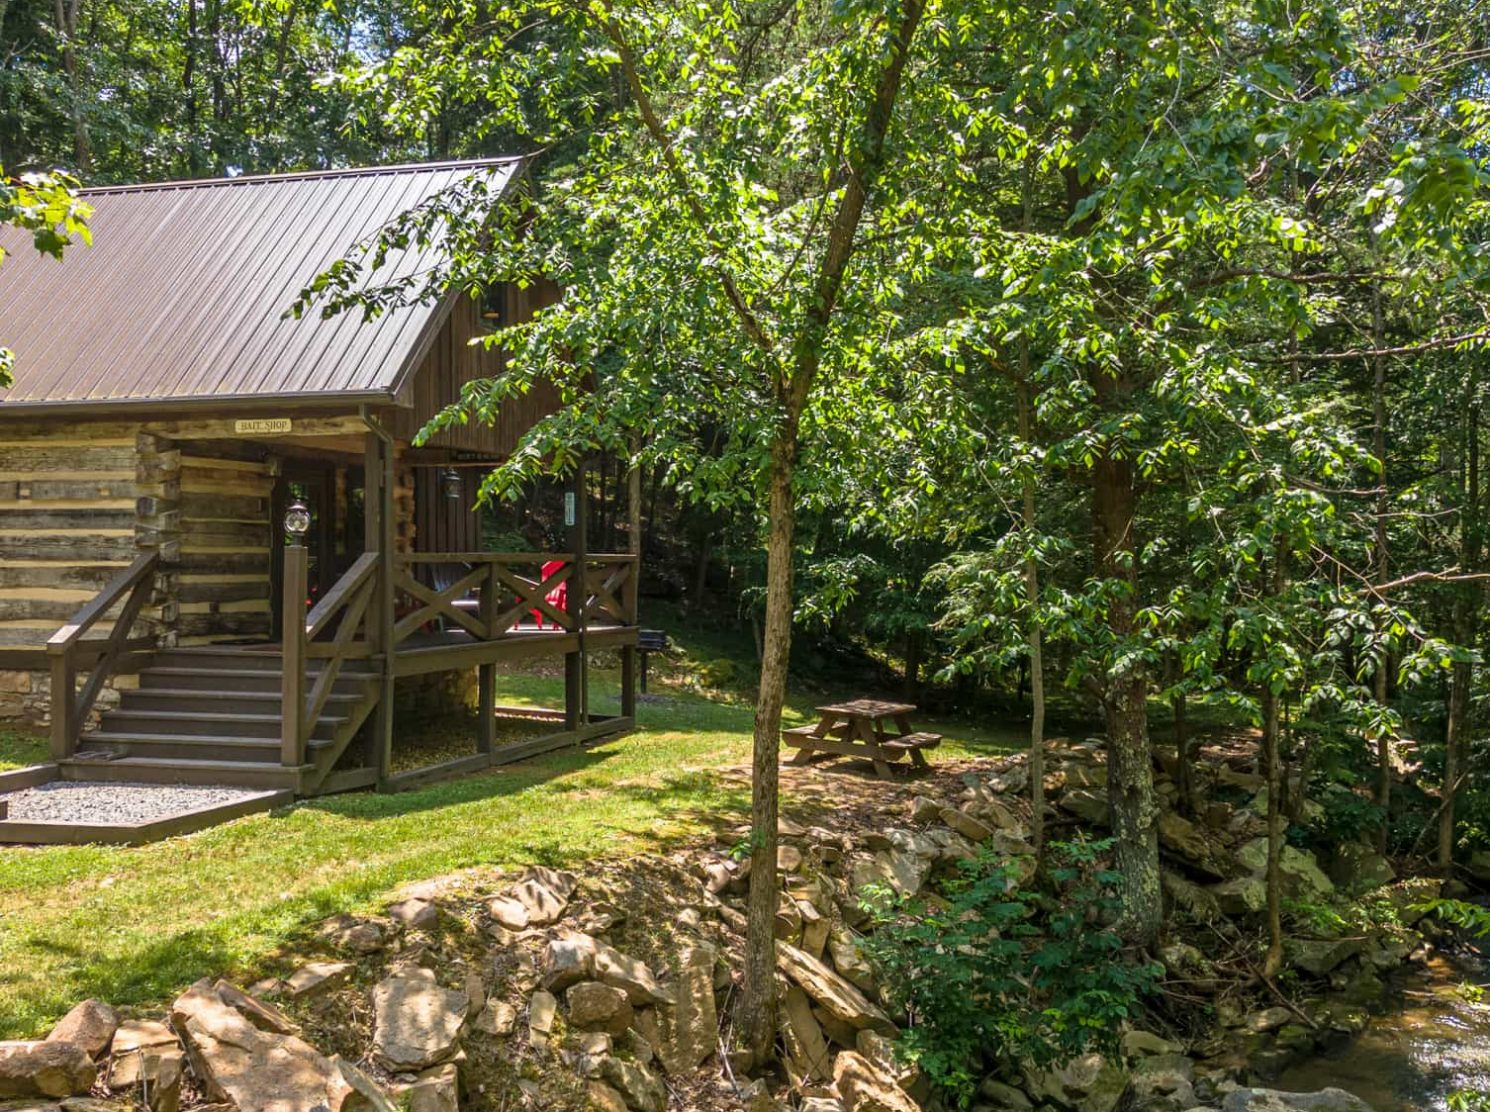 Fishing Creek Cabin on the banks of the Rich Creek